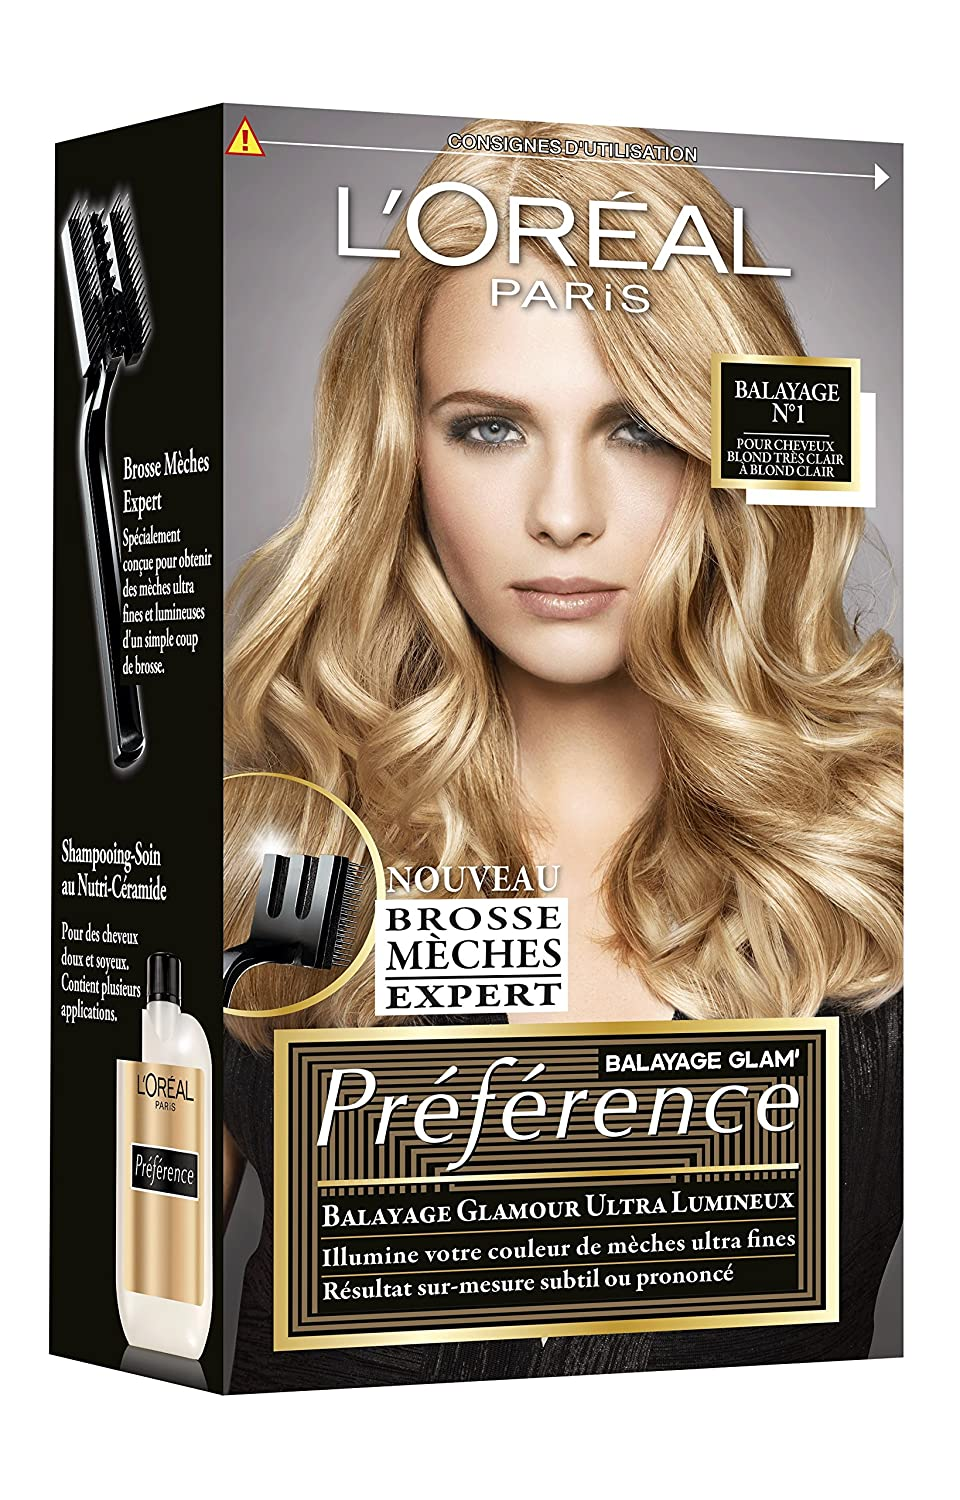 loreal balayage home kit reviews. Black Bedroom Furniture Sets. Home Design Ideas